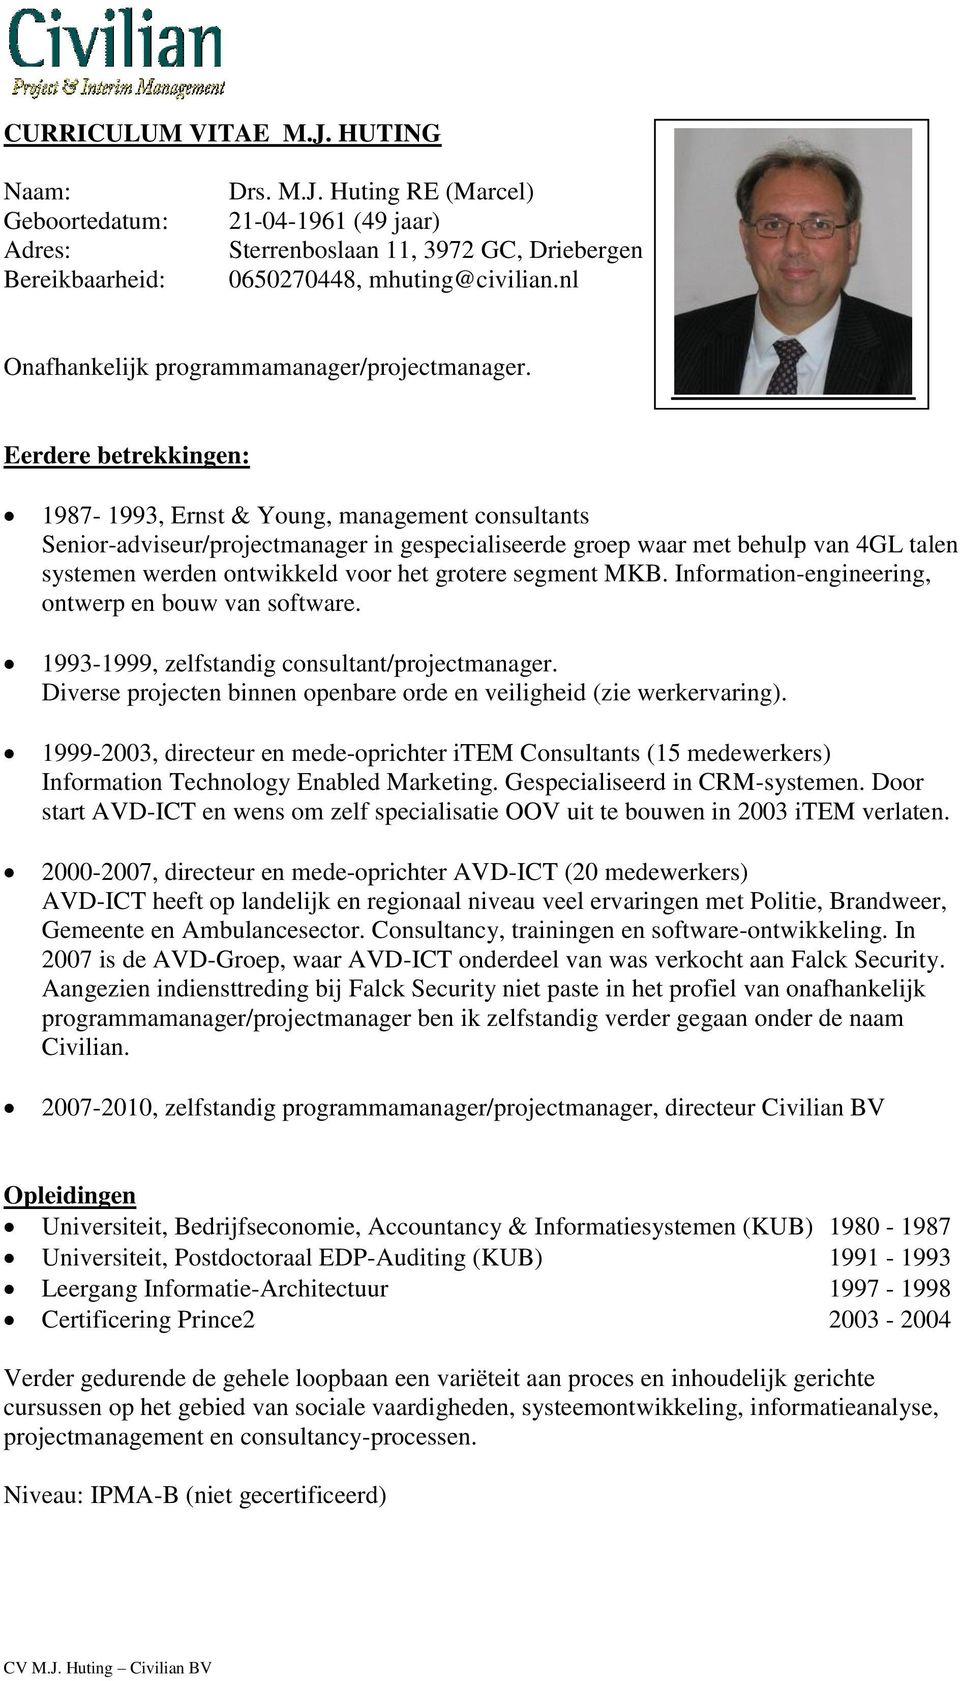 Eerdere betrekkingen: 1987-1993, Ernst & Young, management consultants Senior-adviseur/projectmanager in gespecialiseerde groep waar met behulp van 4GL talen systemen werden ontwikkeld voor het